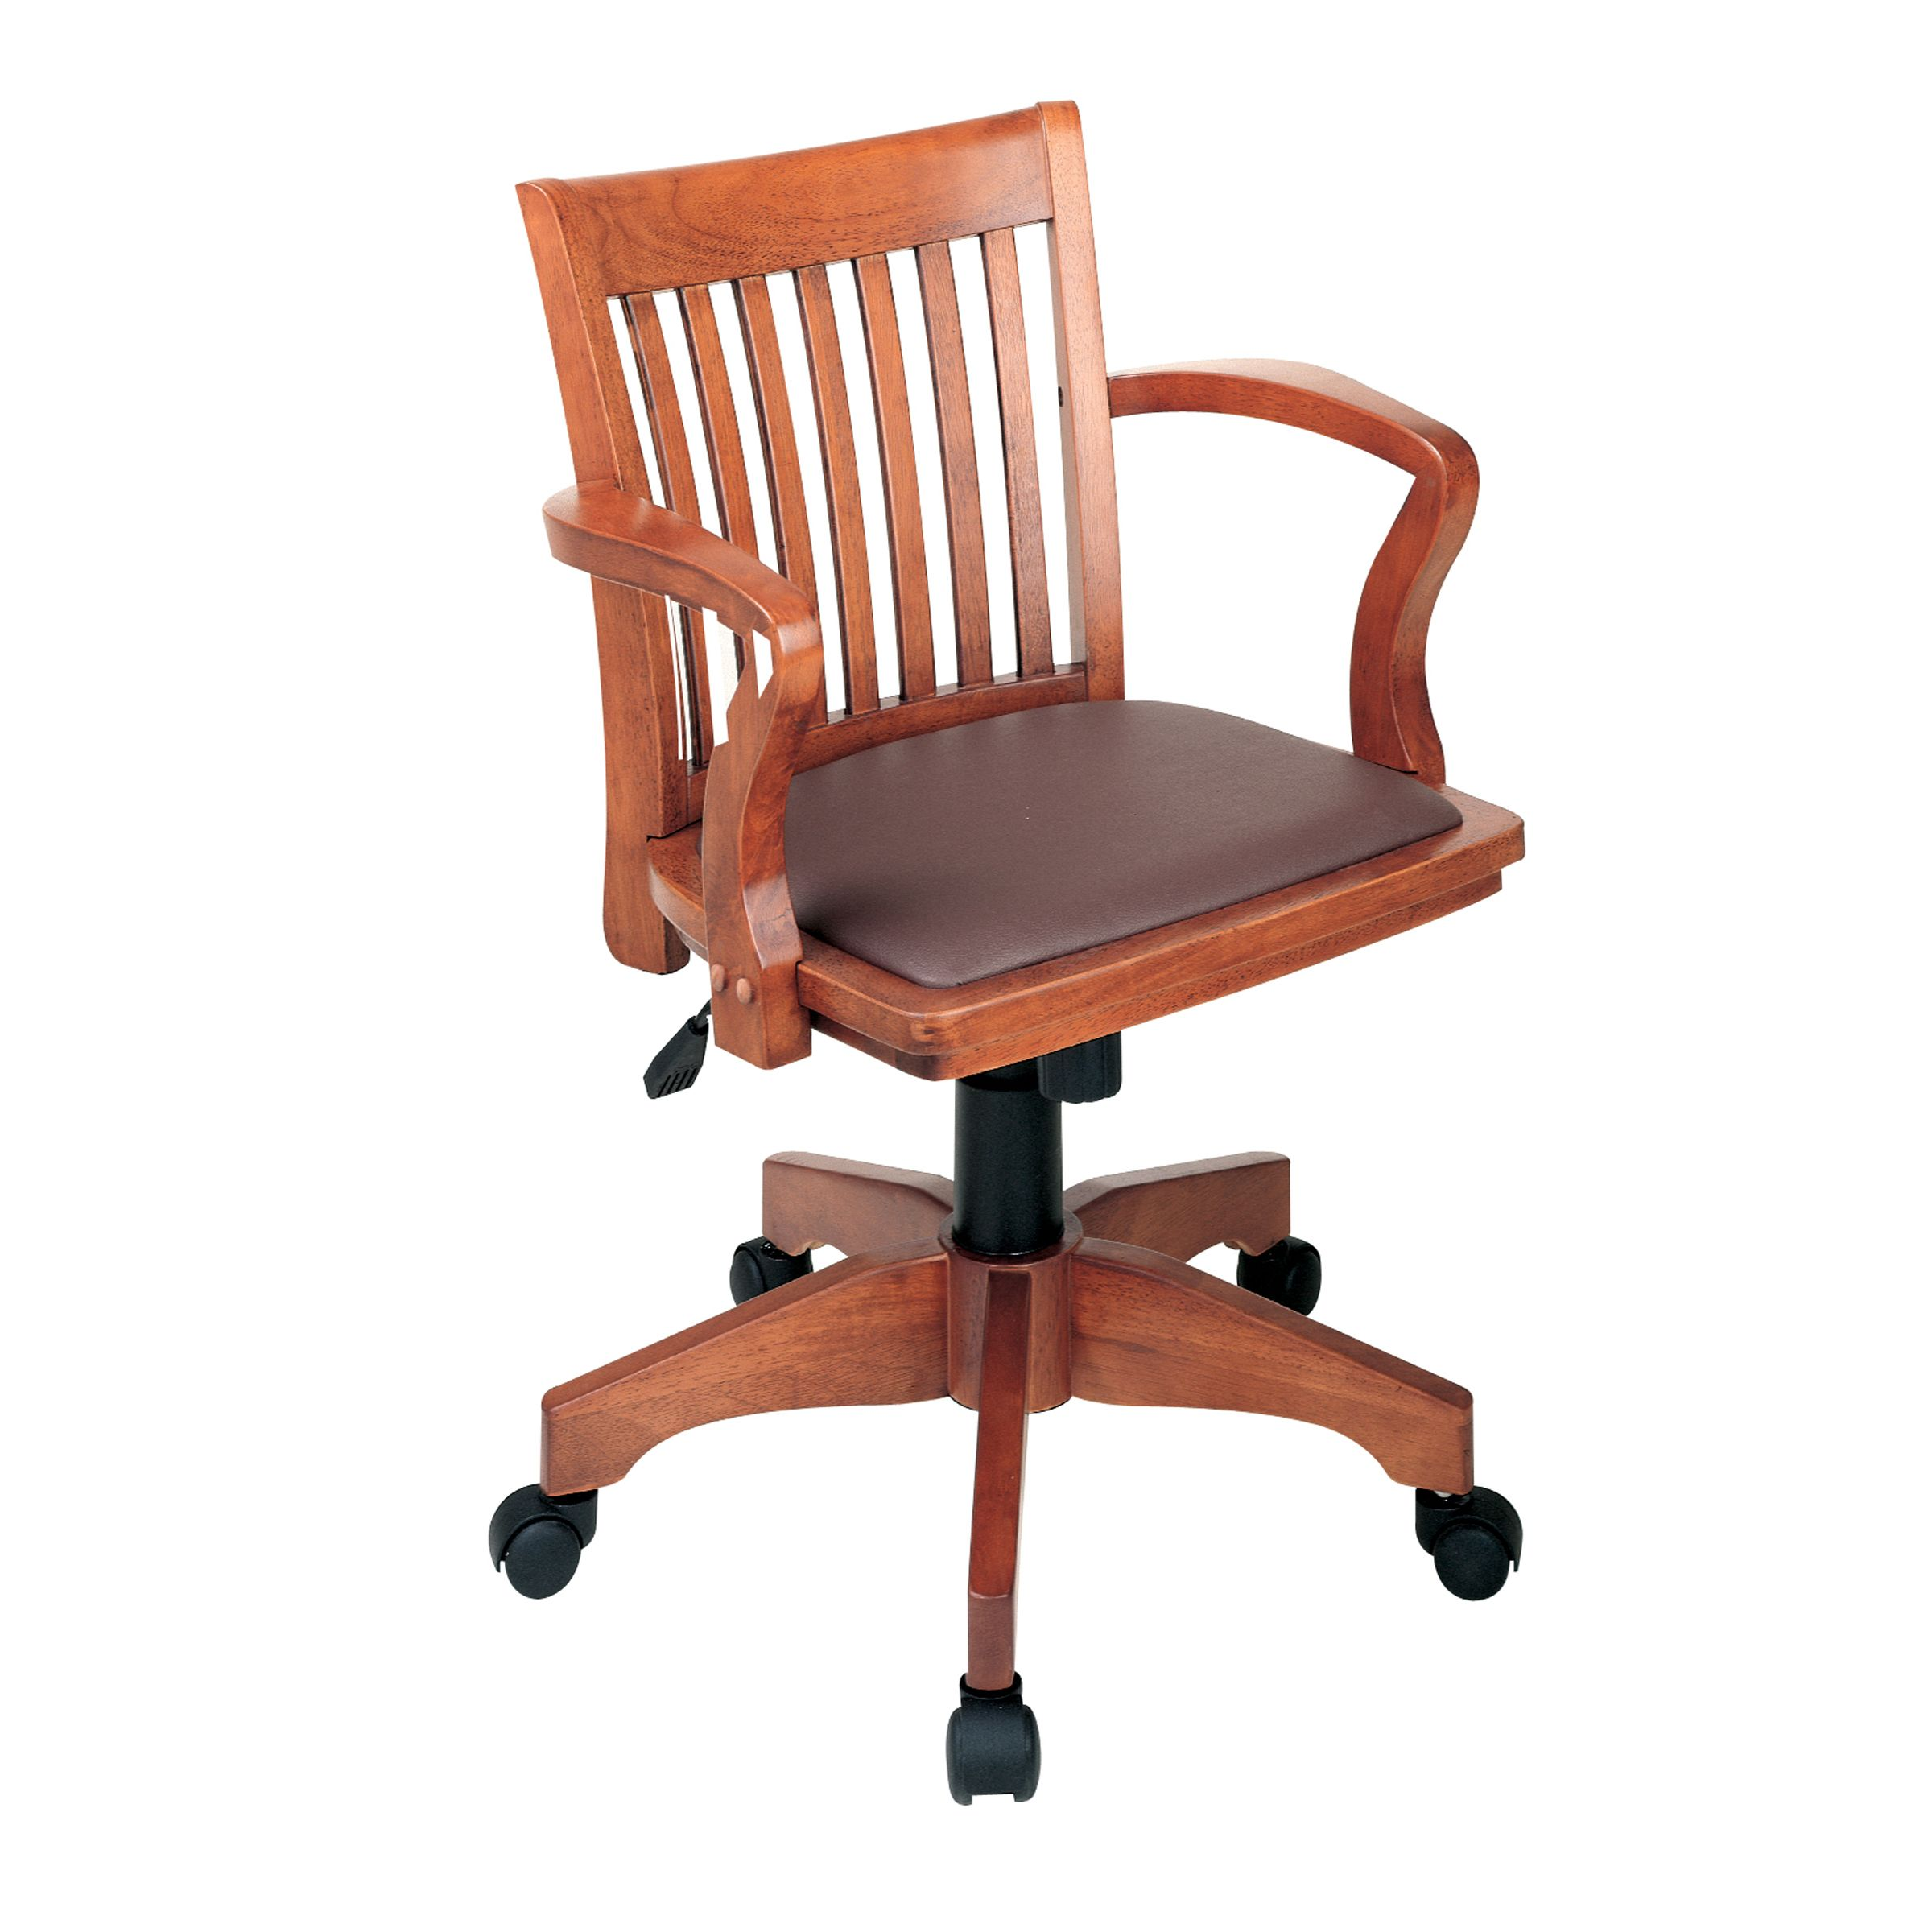 Adjustable Wood Bankers' Desk Chair with